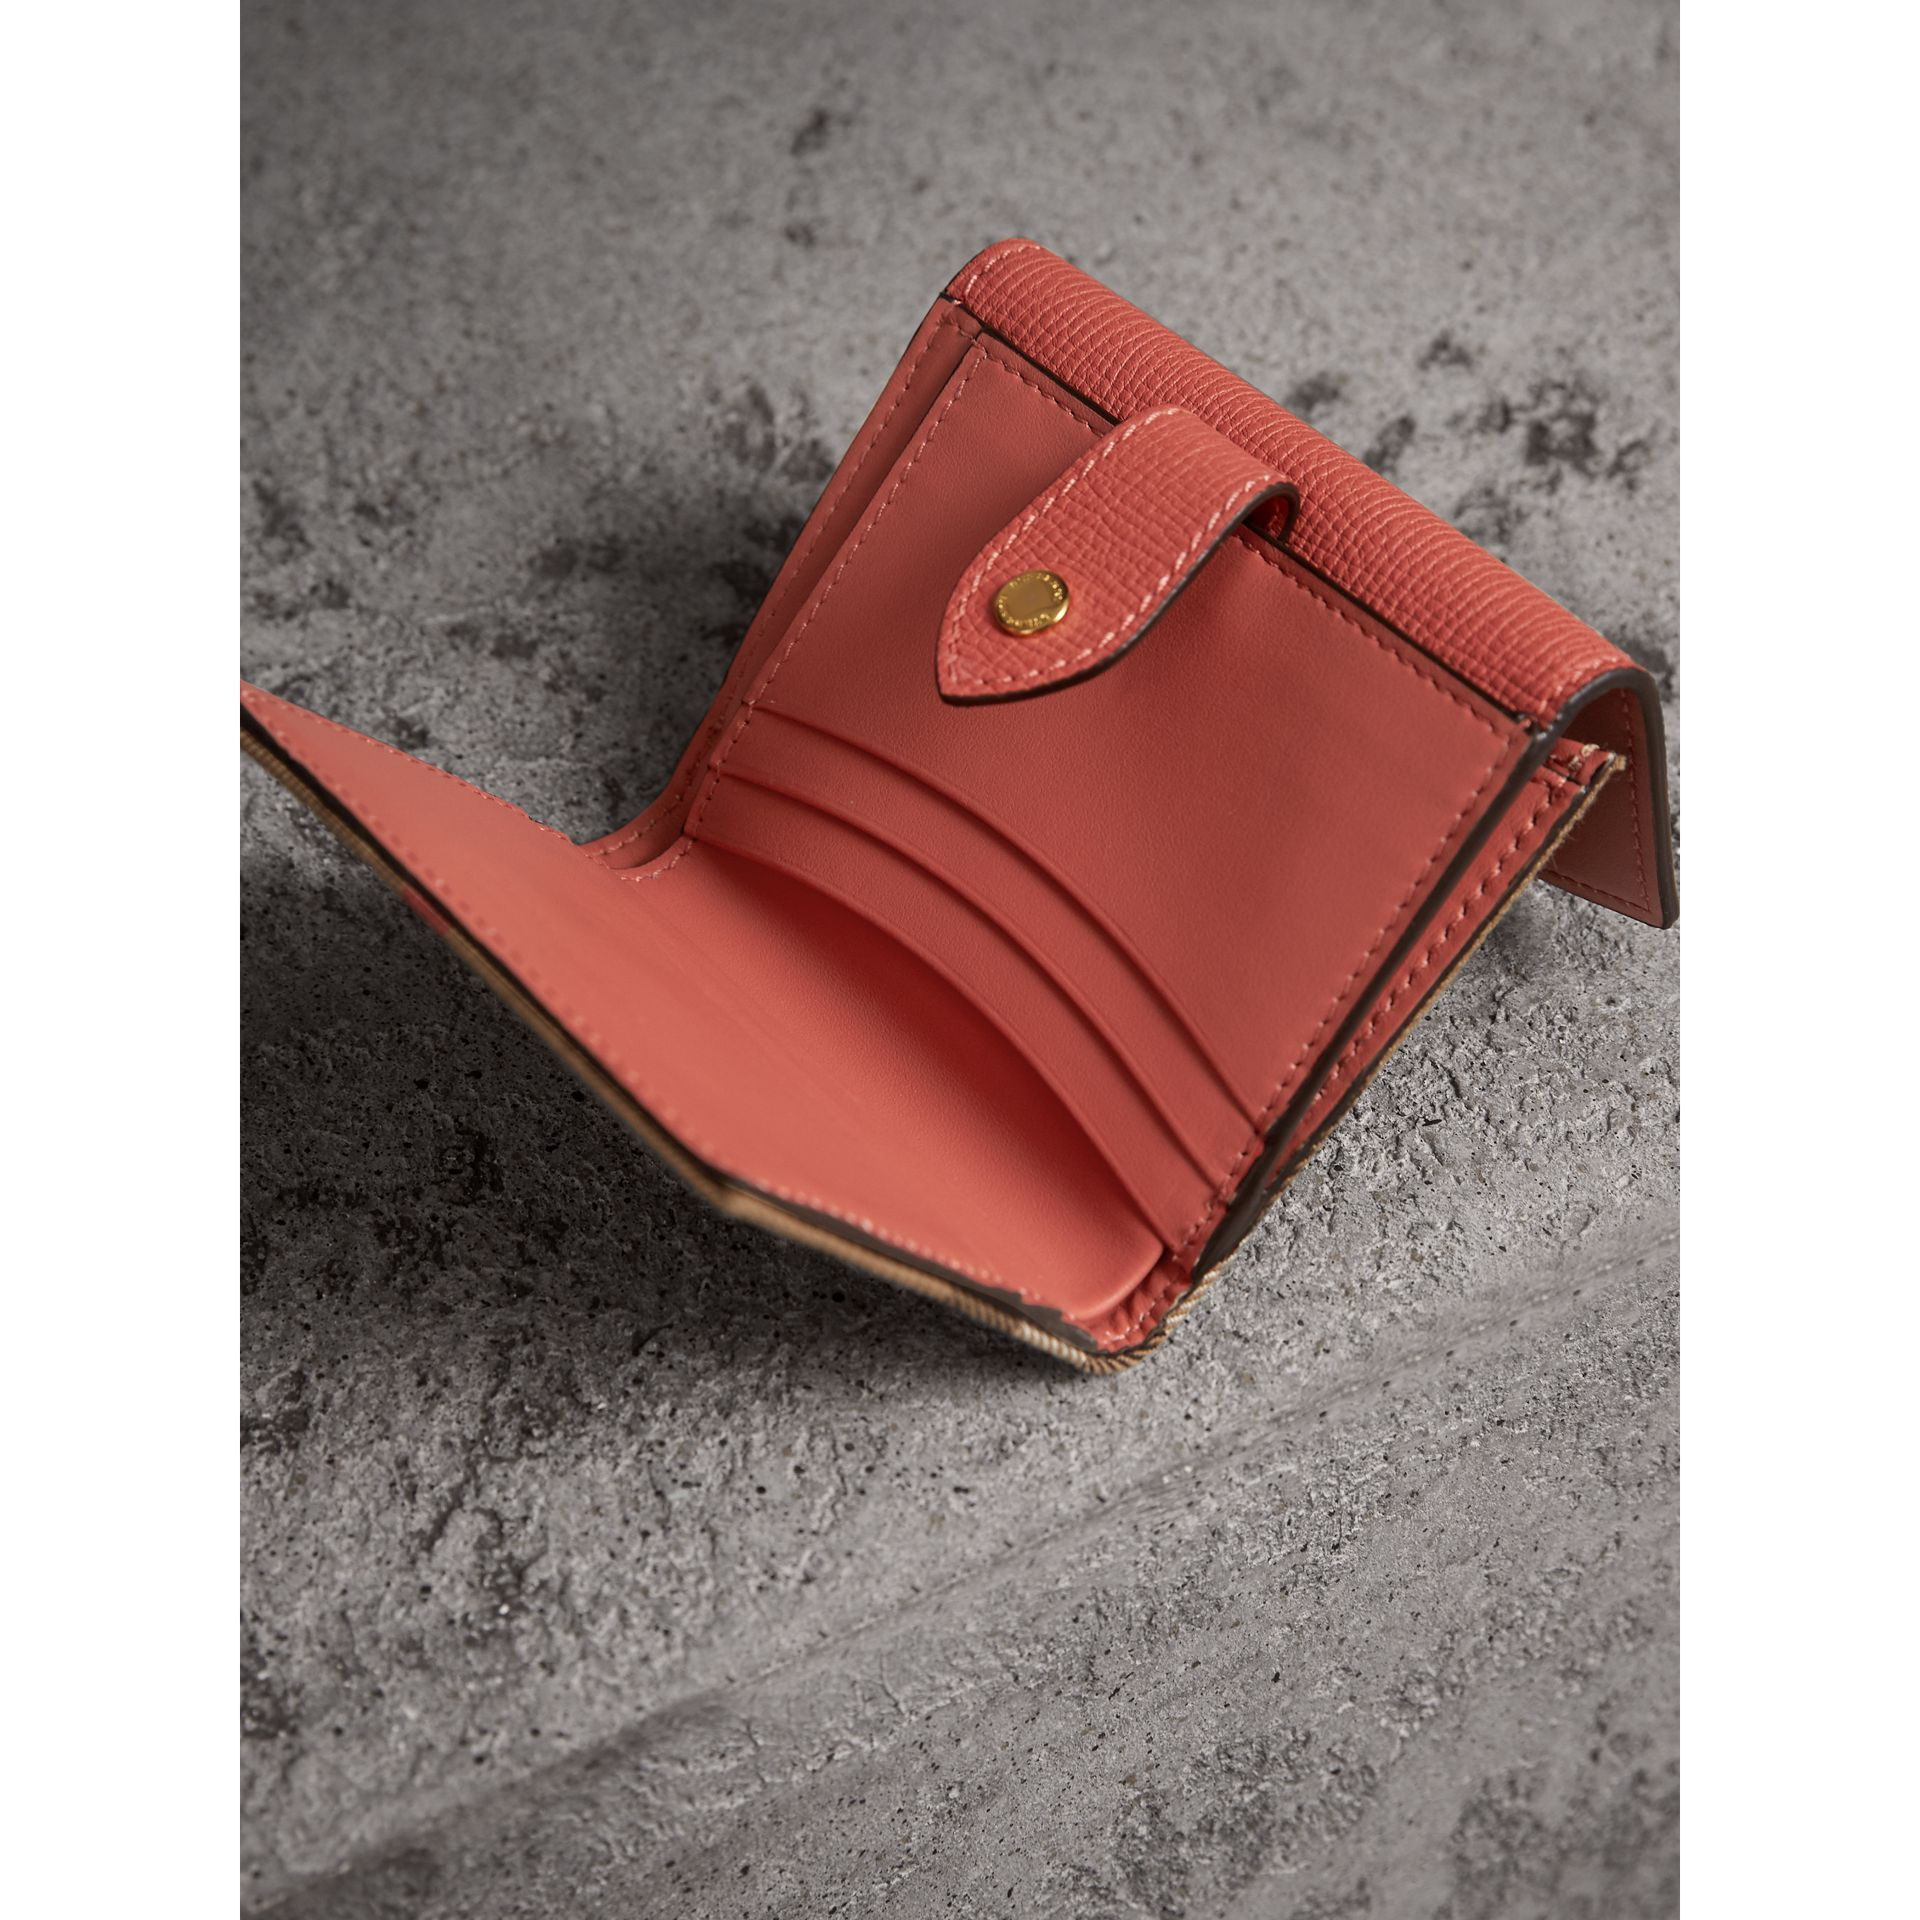 House Check and Leather Wallet in Cinnamon Red - Women | Burberry Canada - gallery image 3